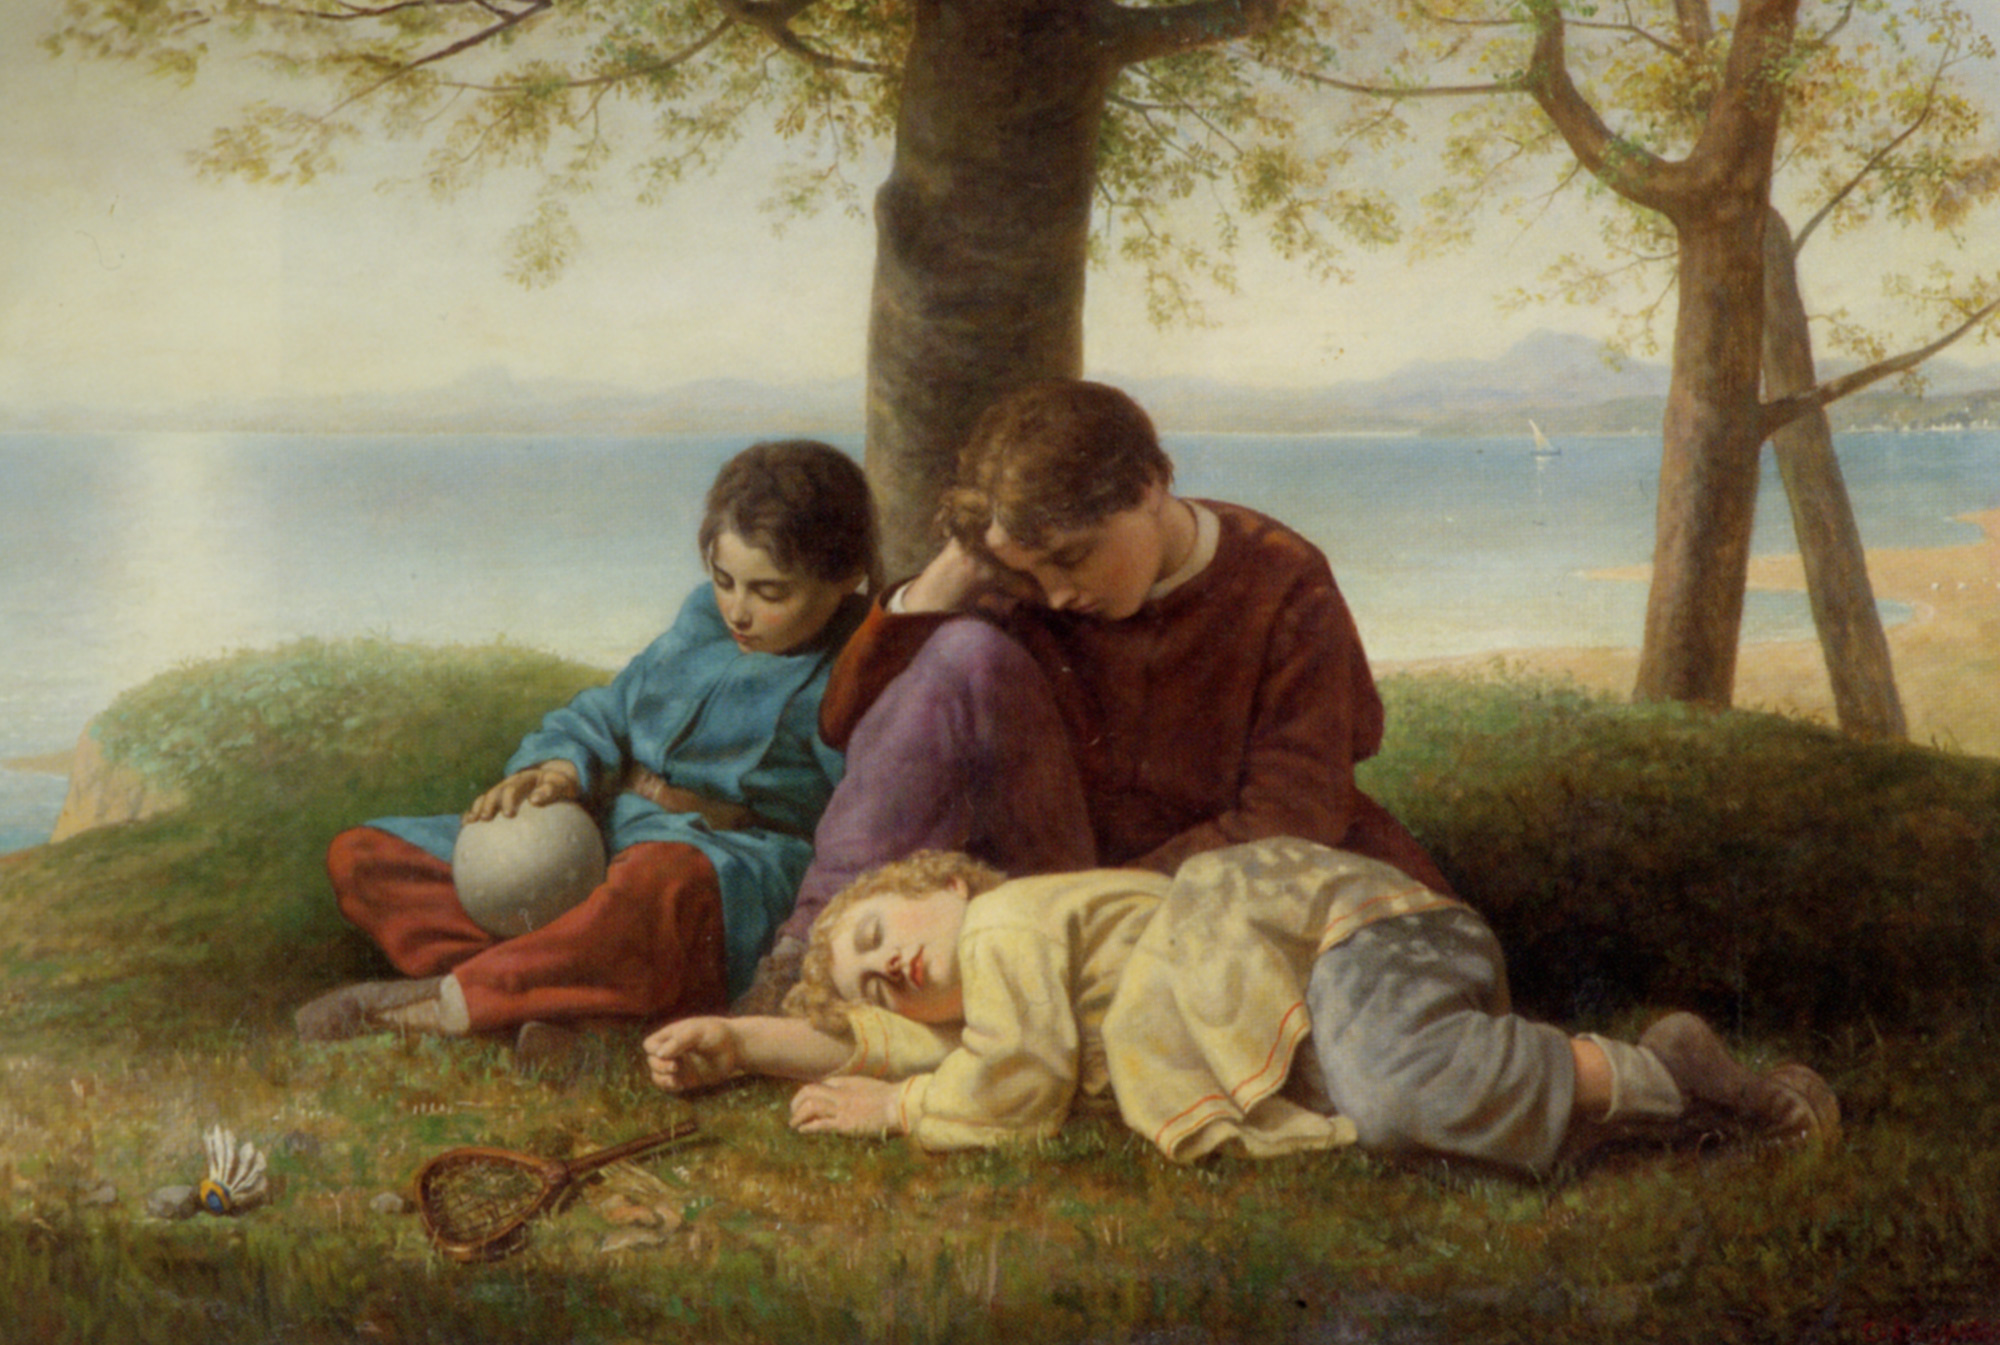 Repose :: Charles Lucy  - Children's portrait in art and painting ôîòî